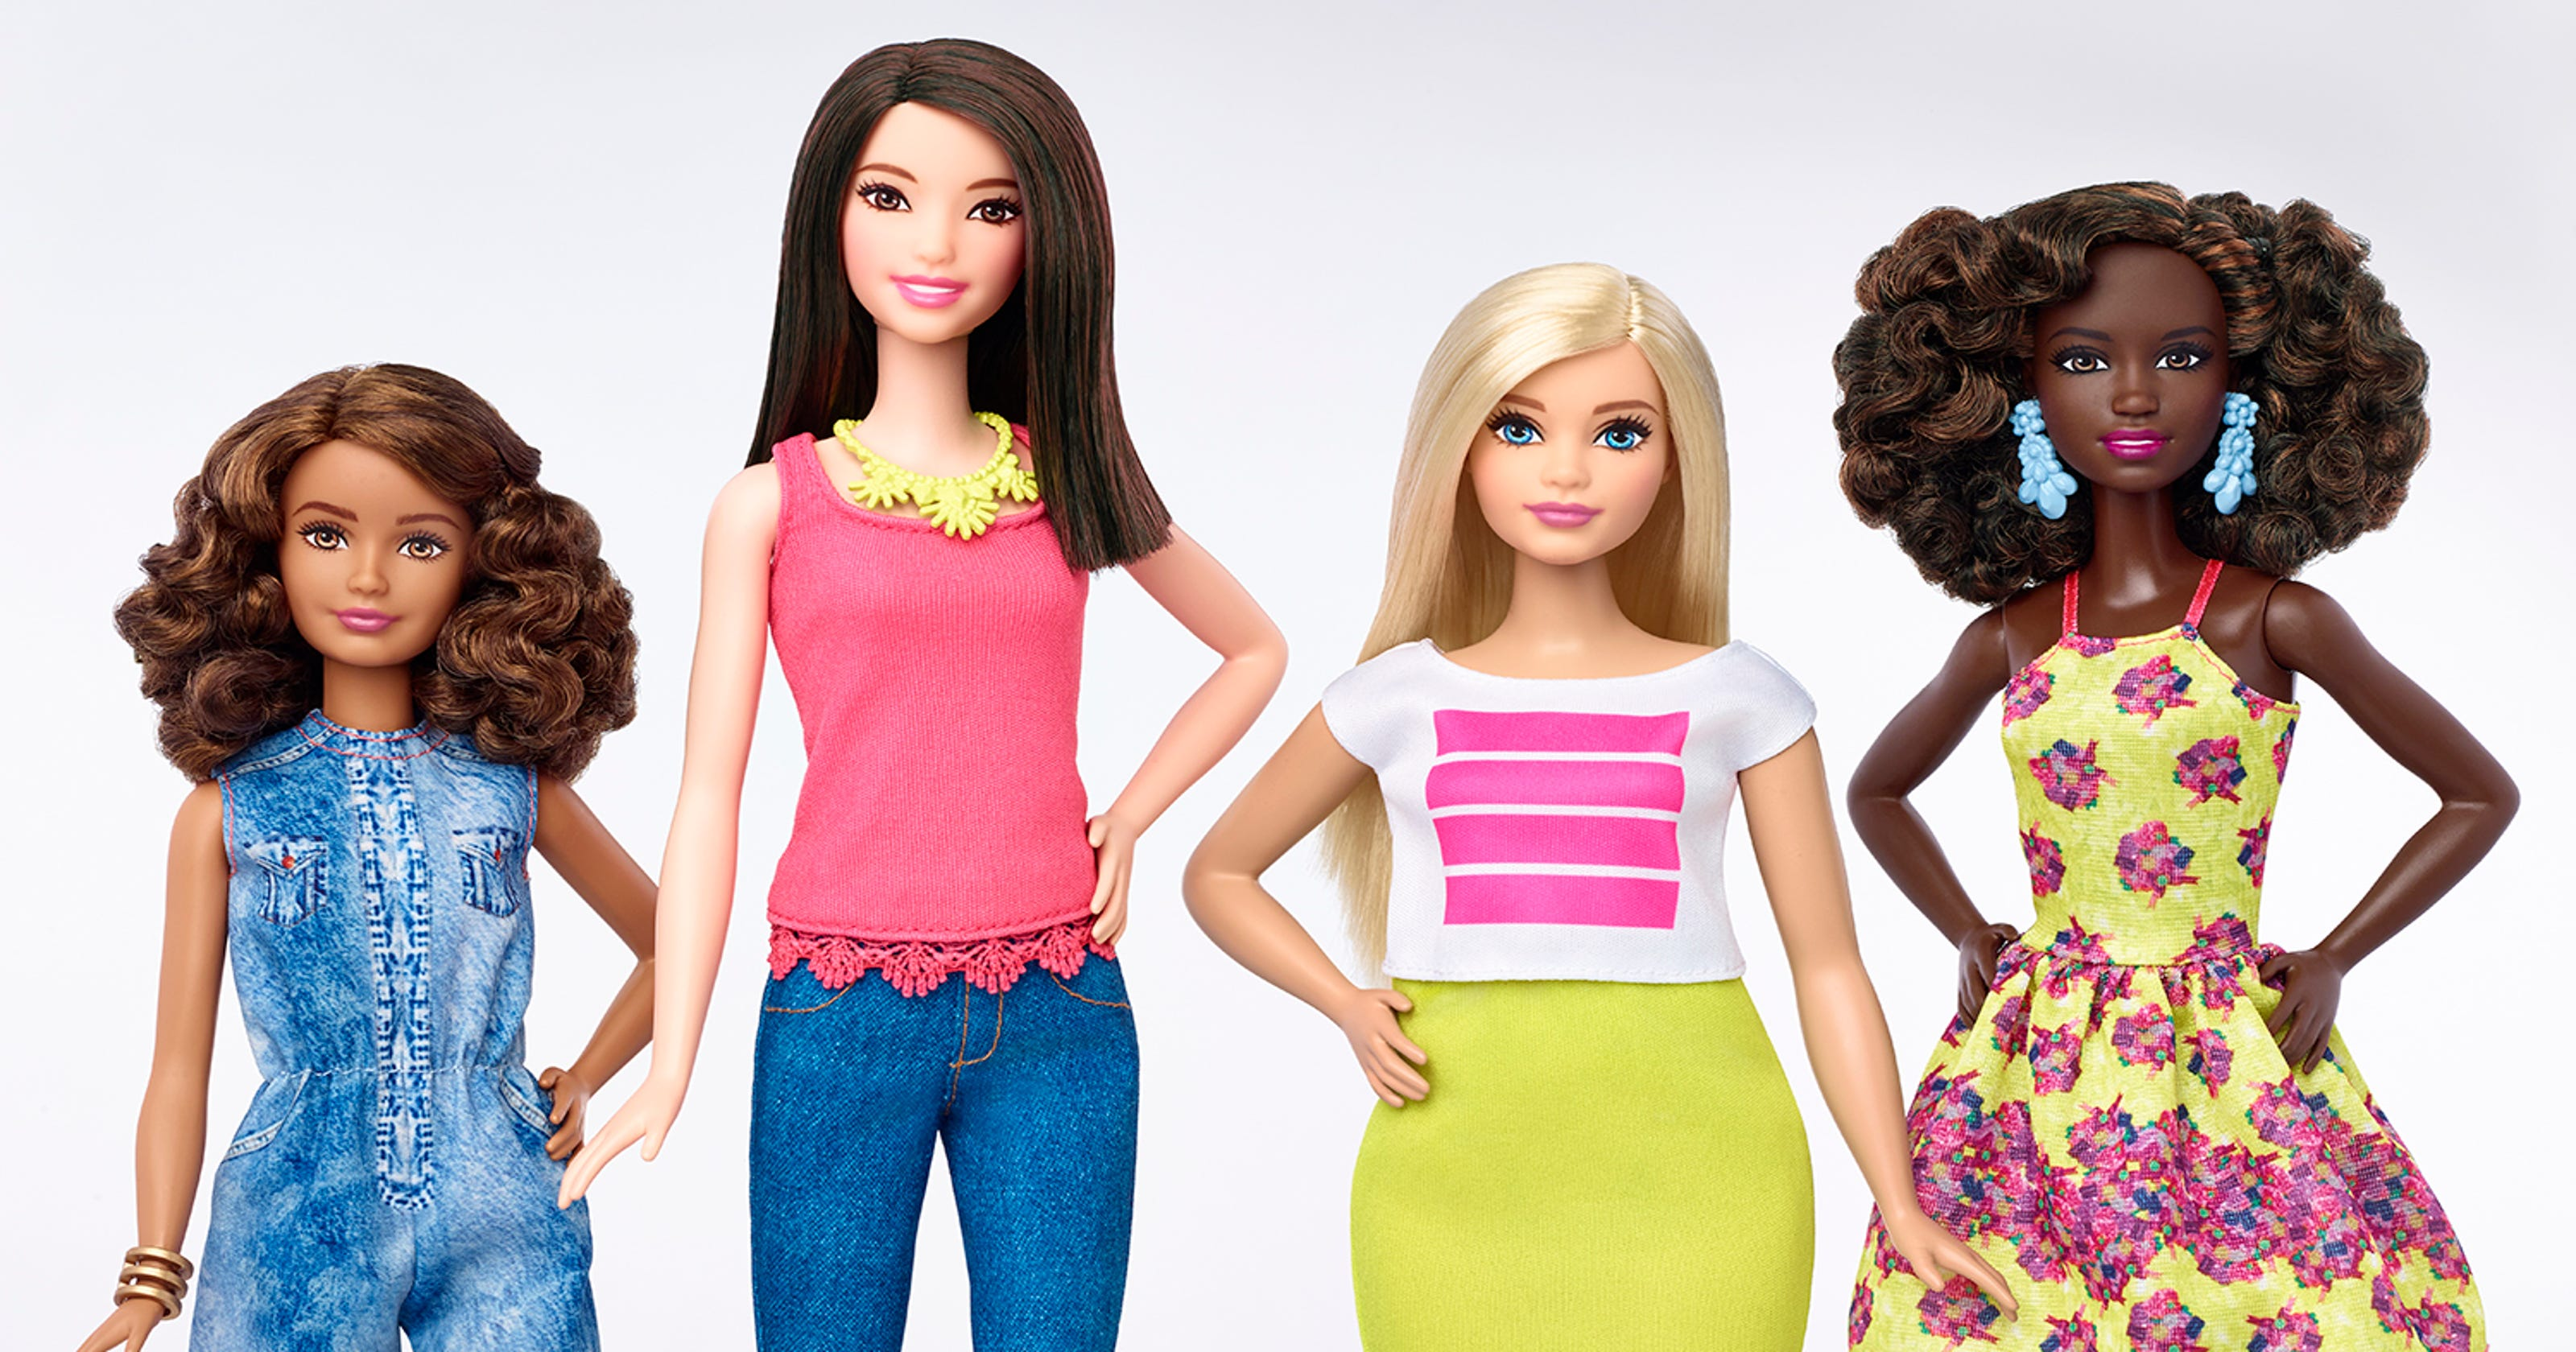 Barbie's new shapes: Tall, petite and curvy